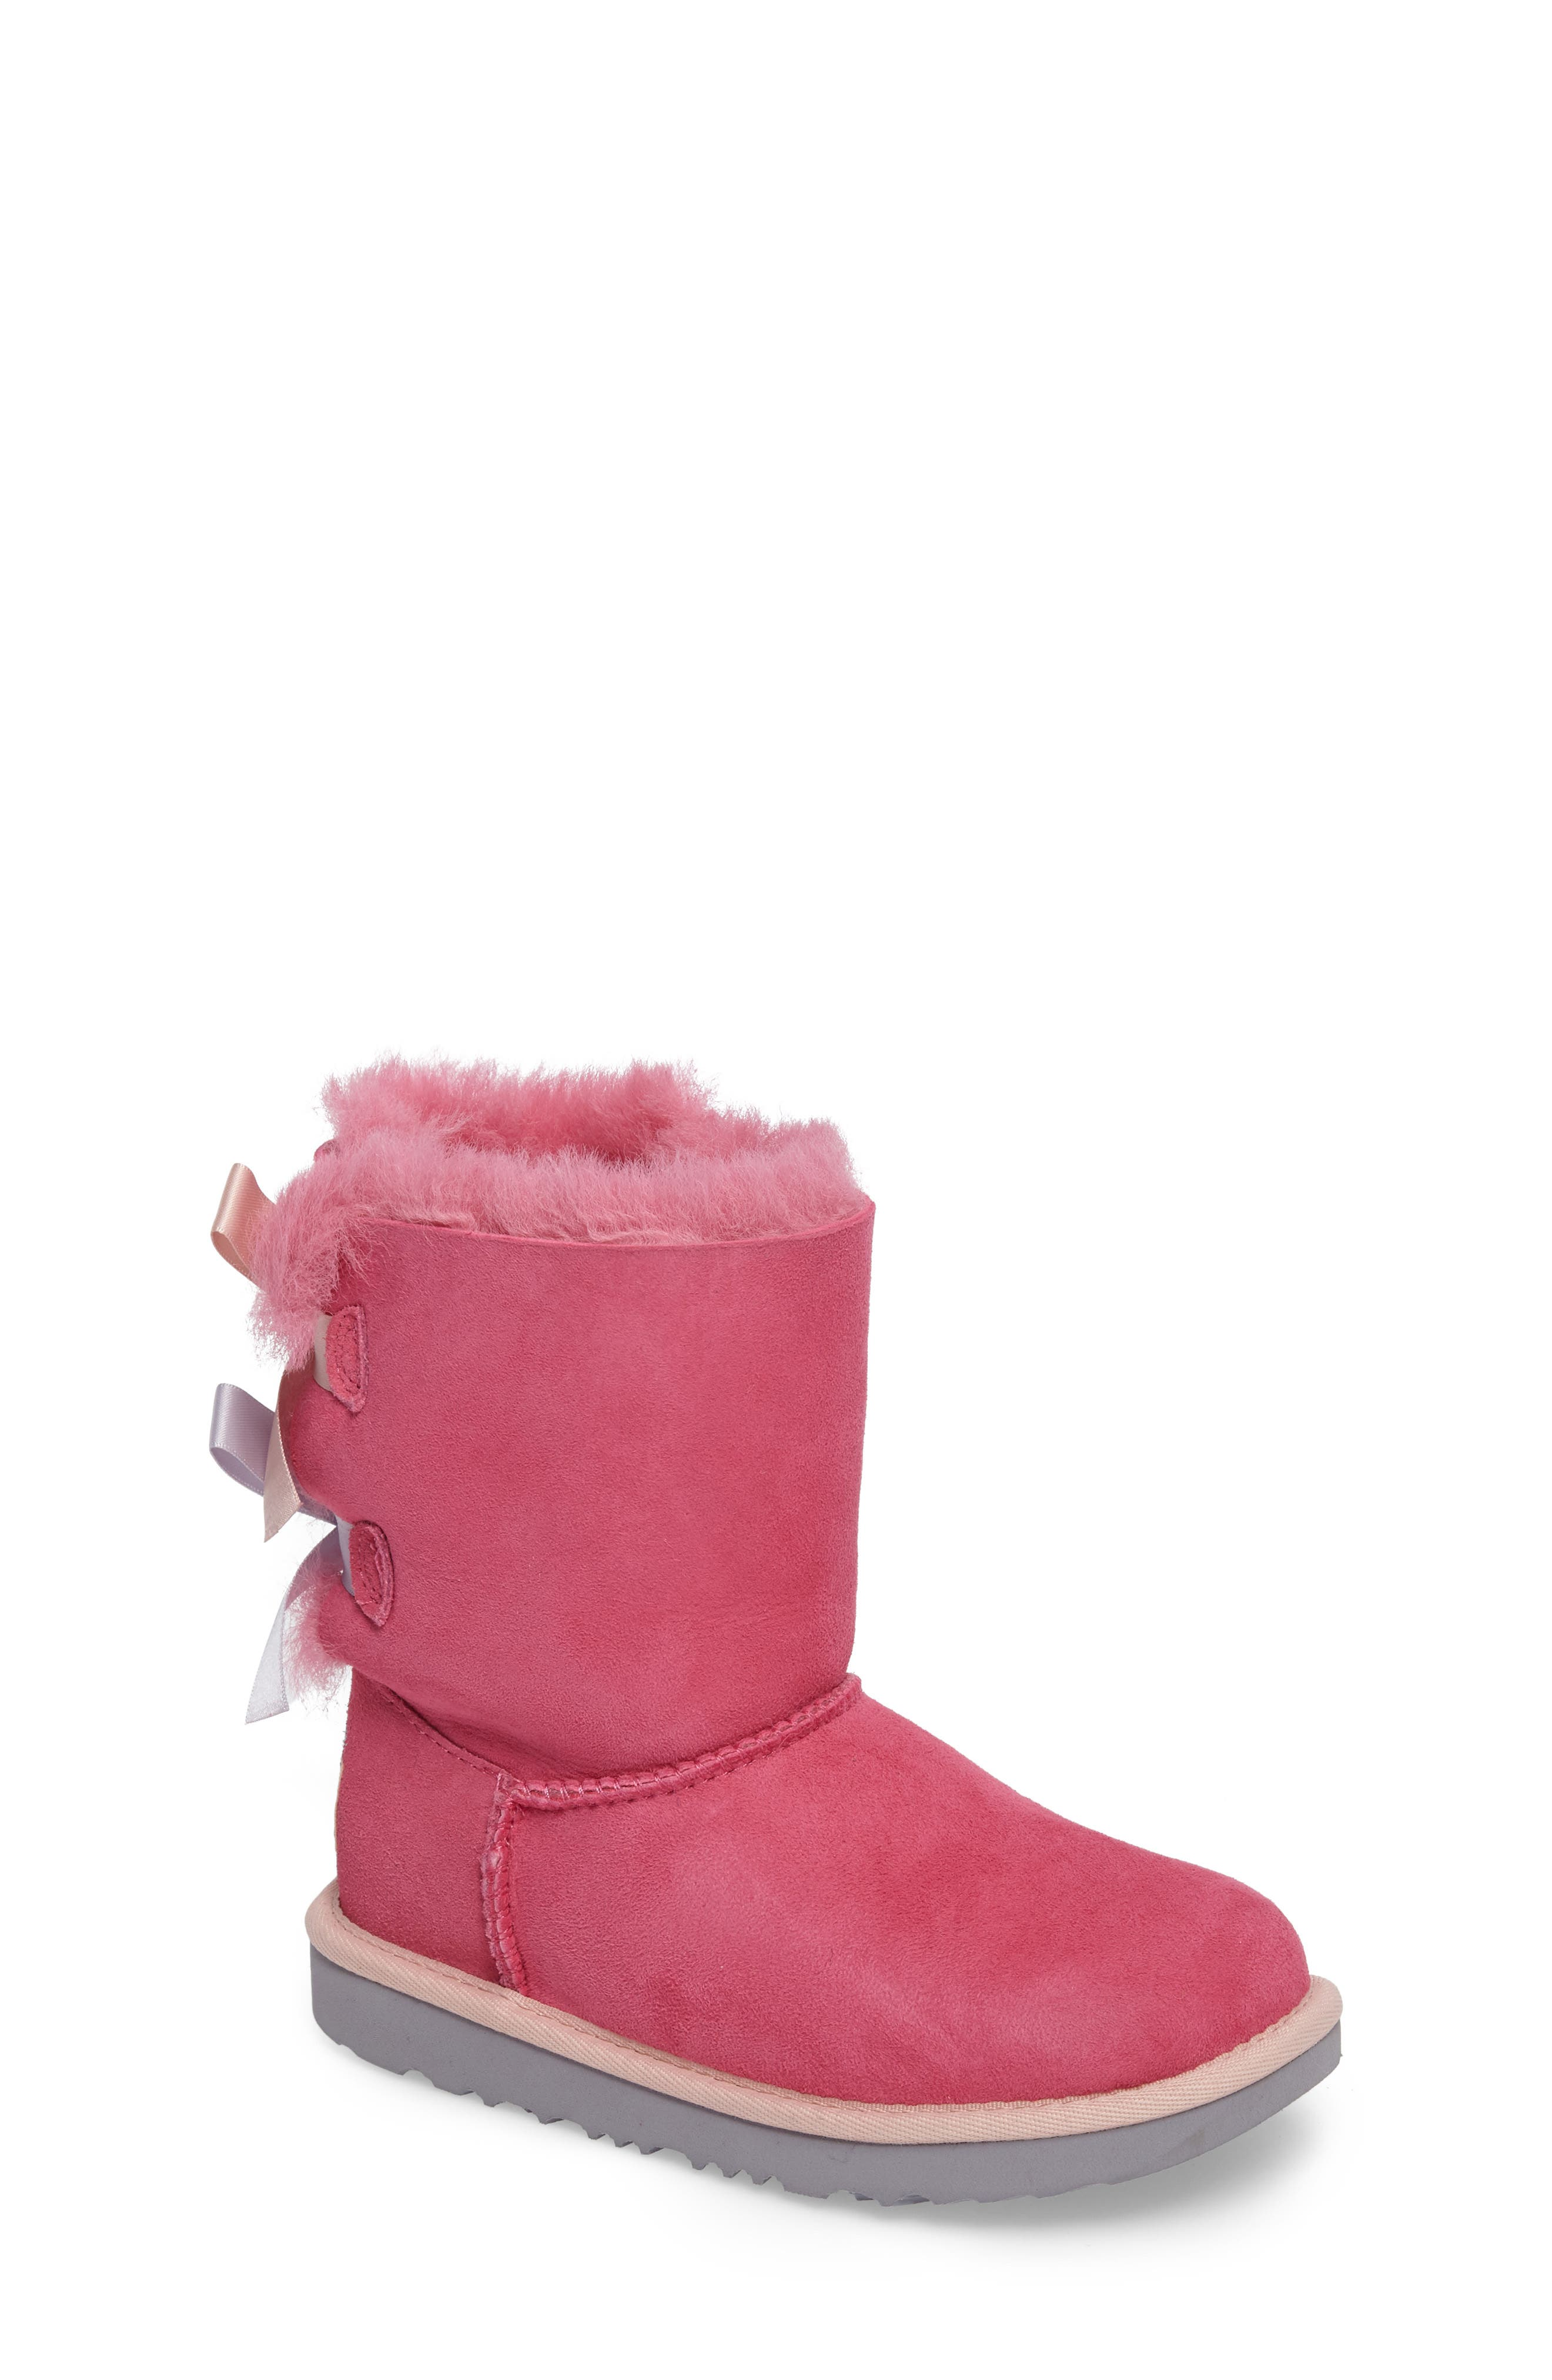 Bailey Bow II Water Resistant Genuine Shearling Boot,                         Main,                         color, Pink/ Blue Suede